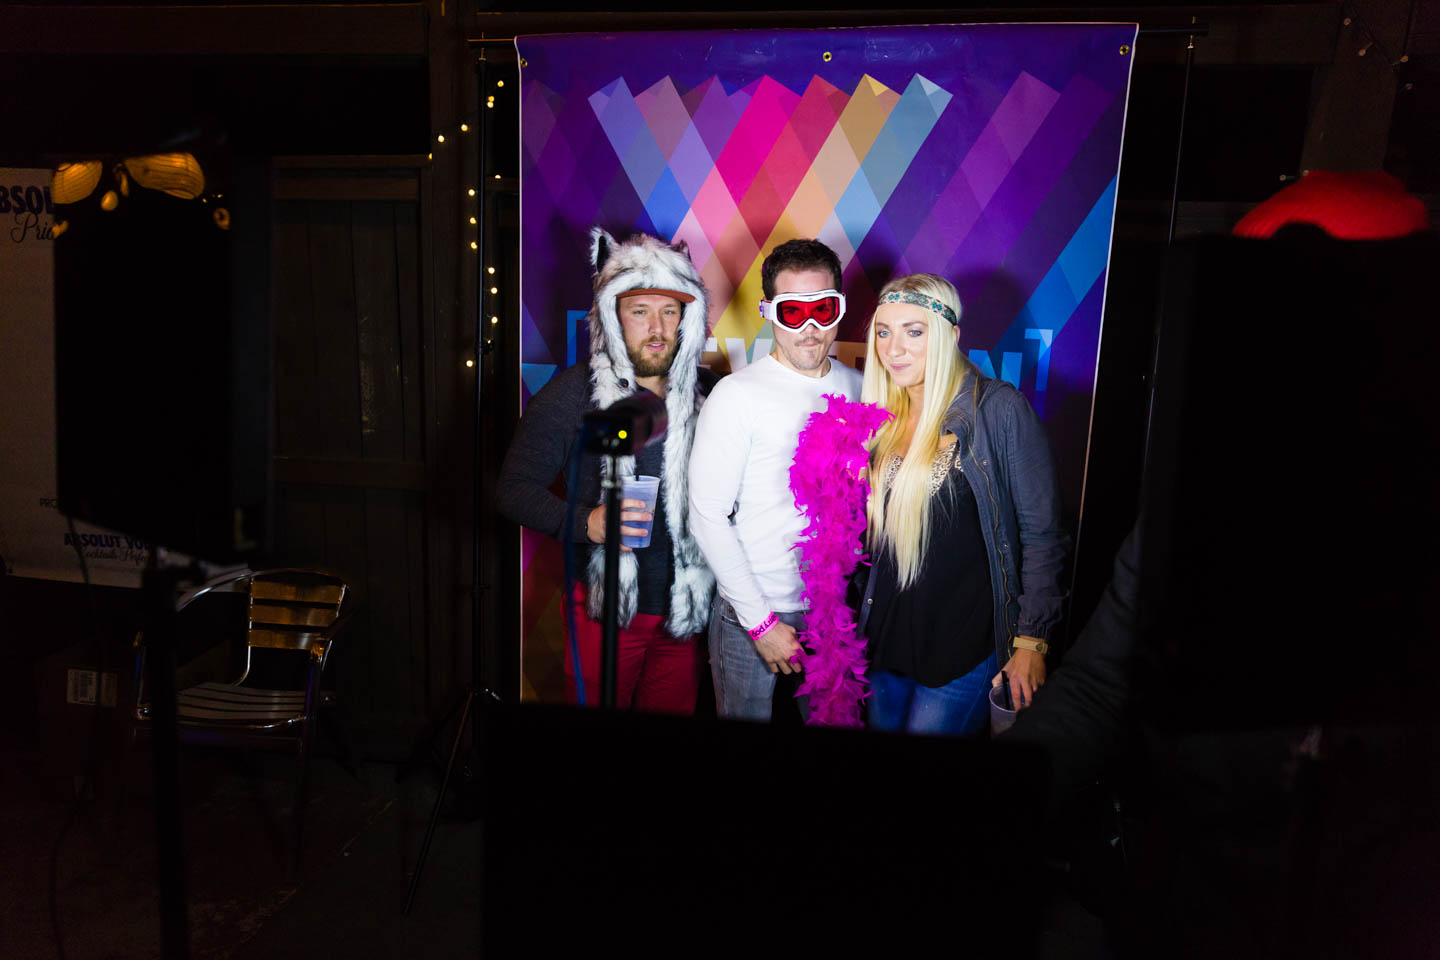 A photobooth was set up for folks